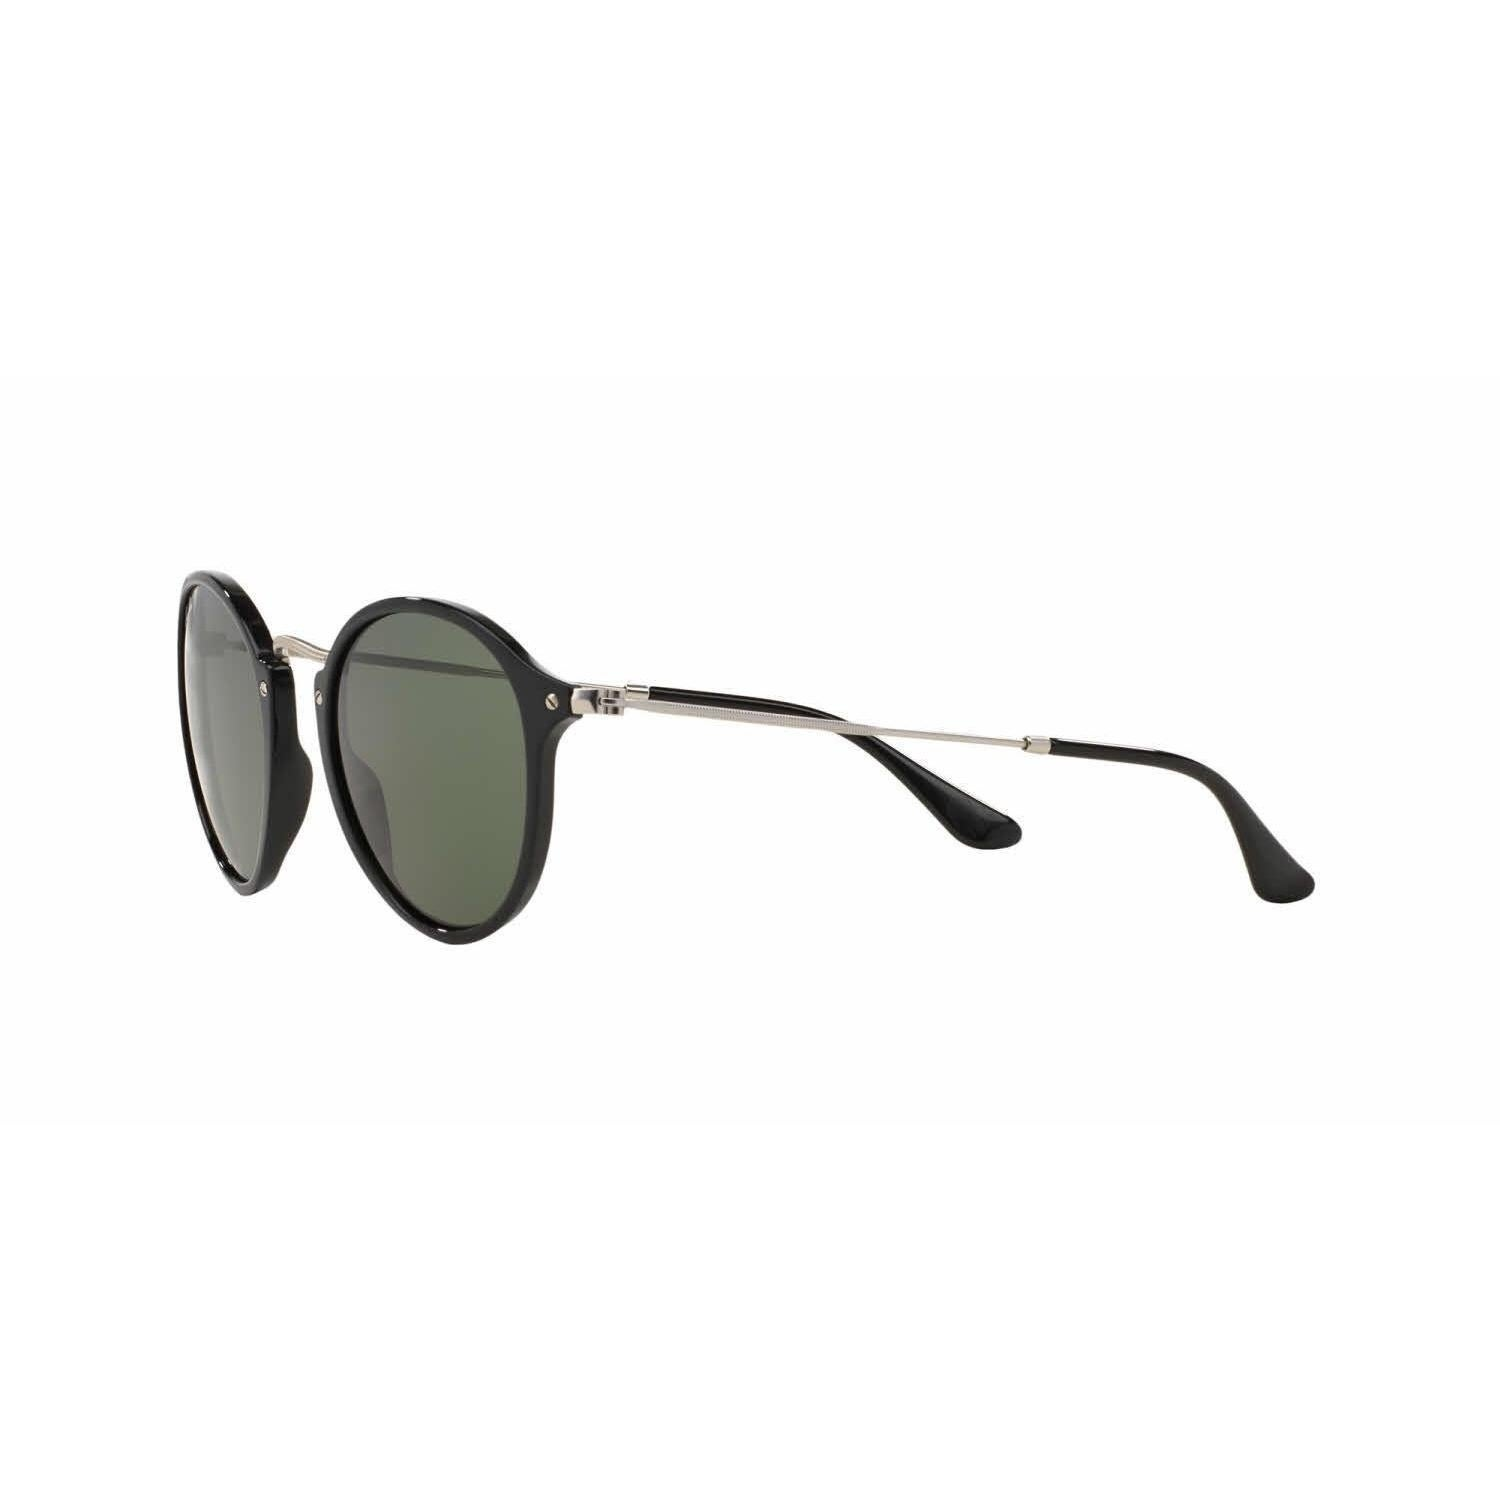 1057bd2f70 Shop Ray-Ban Round Fleck RB2447 901 58 Unisex Black Silver Frame Polarized  Green Lens Sunglasses - Free Shipping Today - Overstock - 13467362